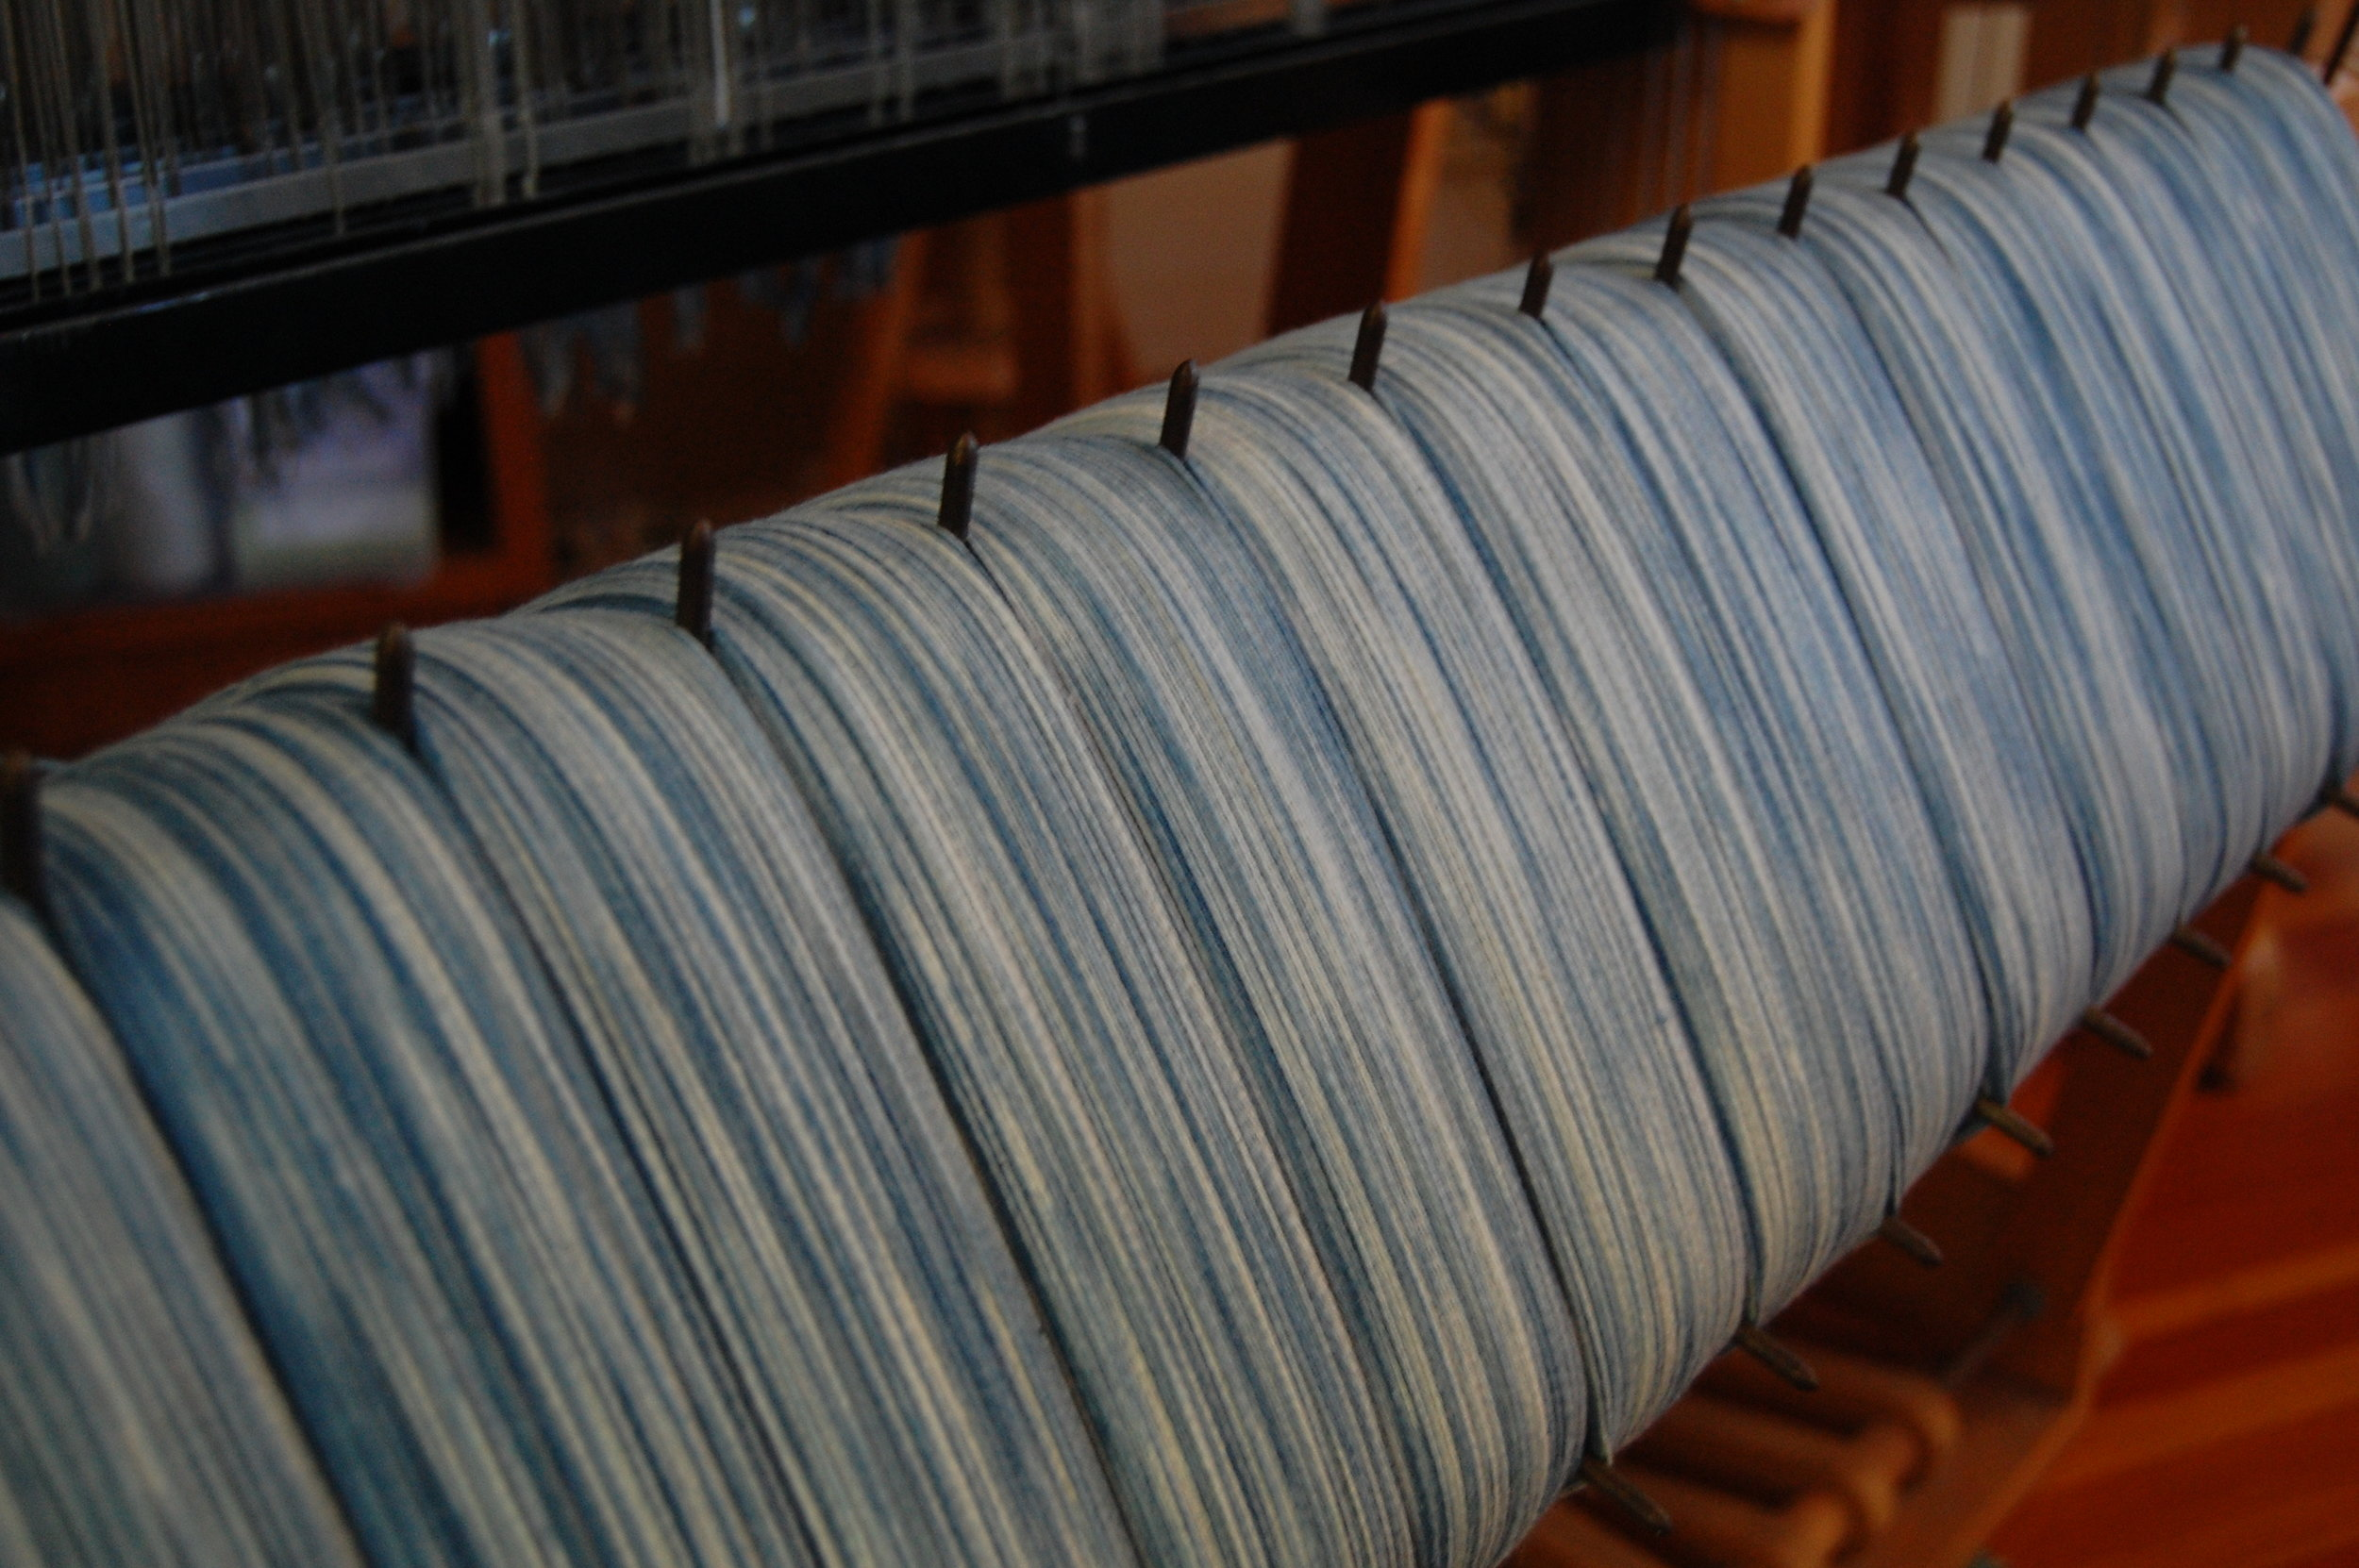 the warp on the loom